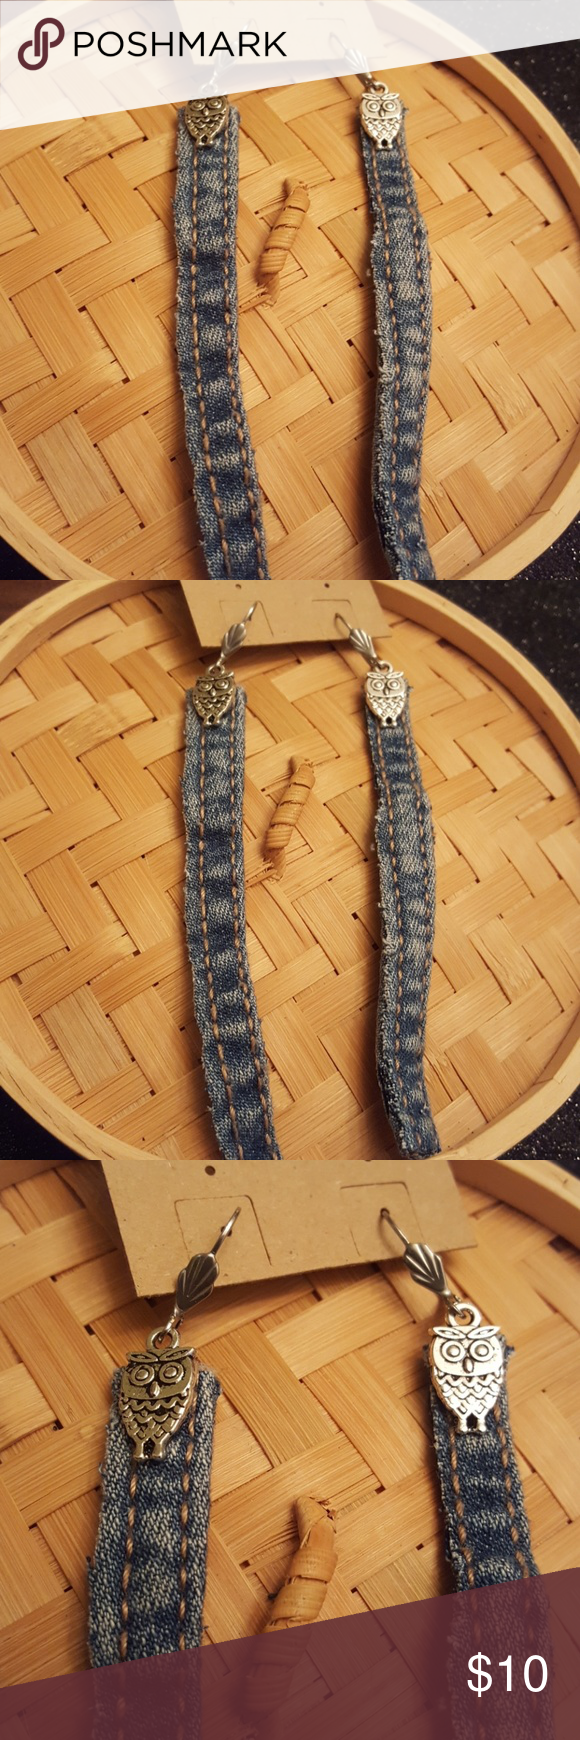 Blue jeans strips steams Owl dangling earrings Blue Jeans strips steams earrings with top small Silver Owls.  Surgical steel lever backs ear wires.  Hypoallergenic.   3 inches in length light weight. Jewelry Earrings